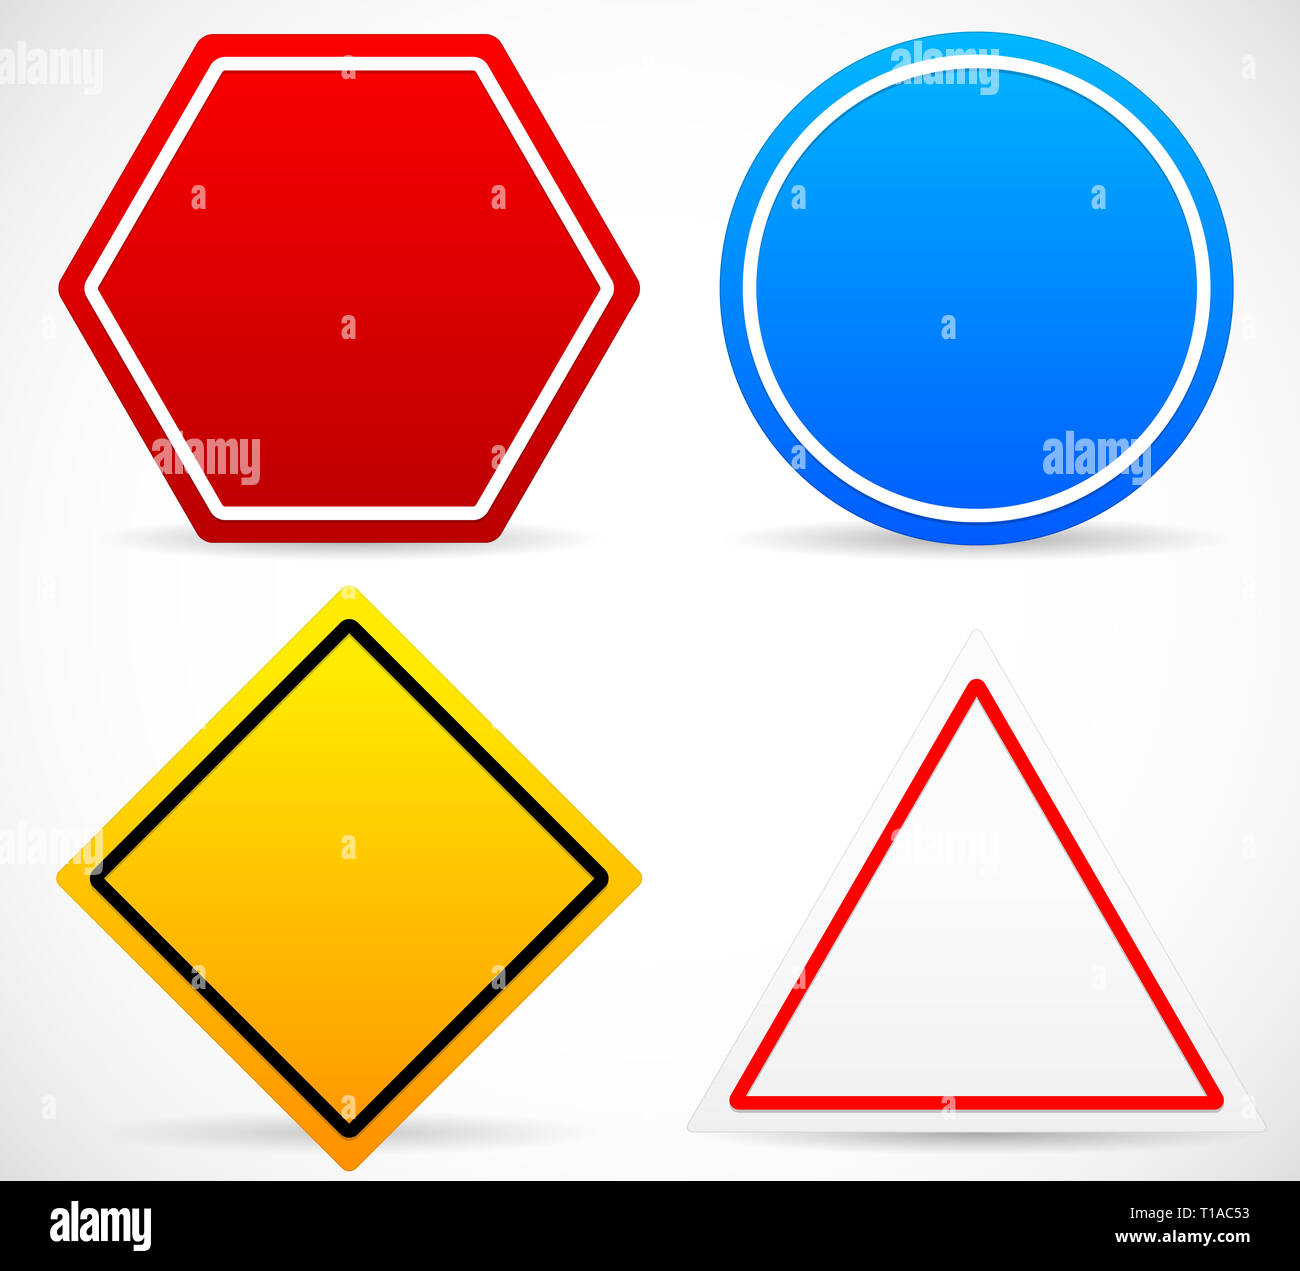 Eps 10 Vector Illustration of Road Sign Shapes. Circle, Square, Triangle, Hexagon Road Signs. Red, Blue, Yellow, and White in colors. - Stock Image